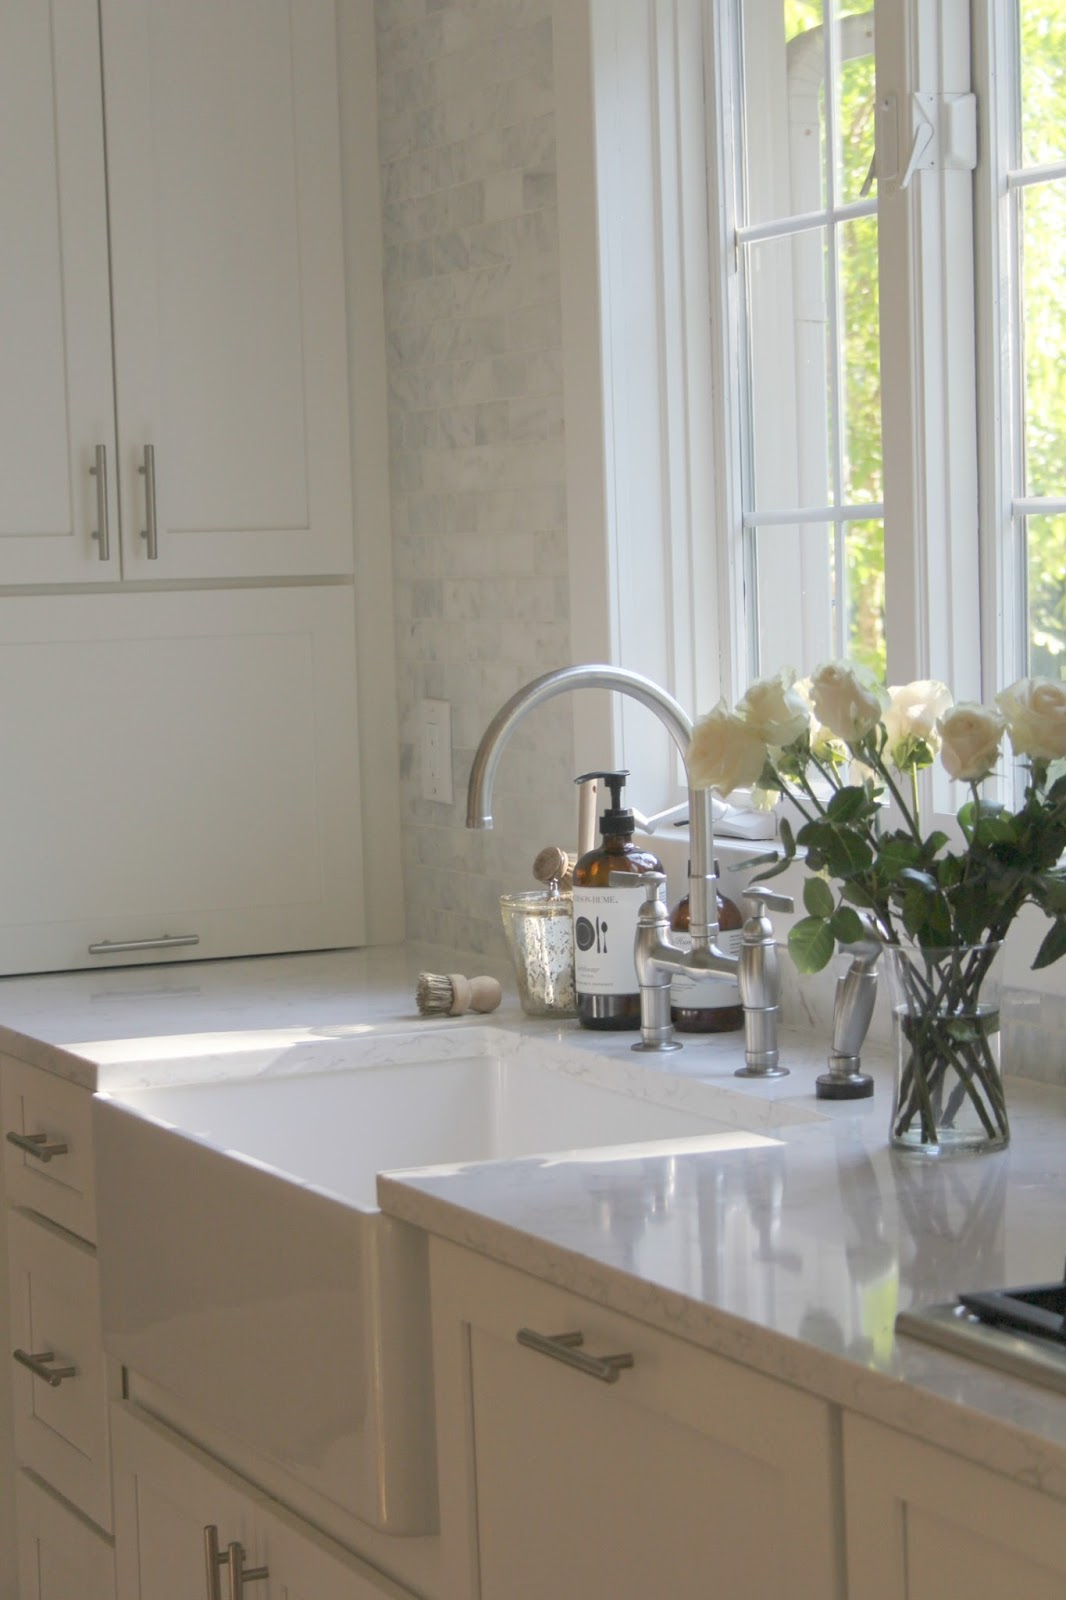 White Shaker cabinets and #farmsink in #modernfarmhouse kitchen by Hello Lovely Studio #minuet